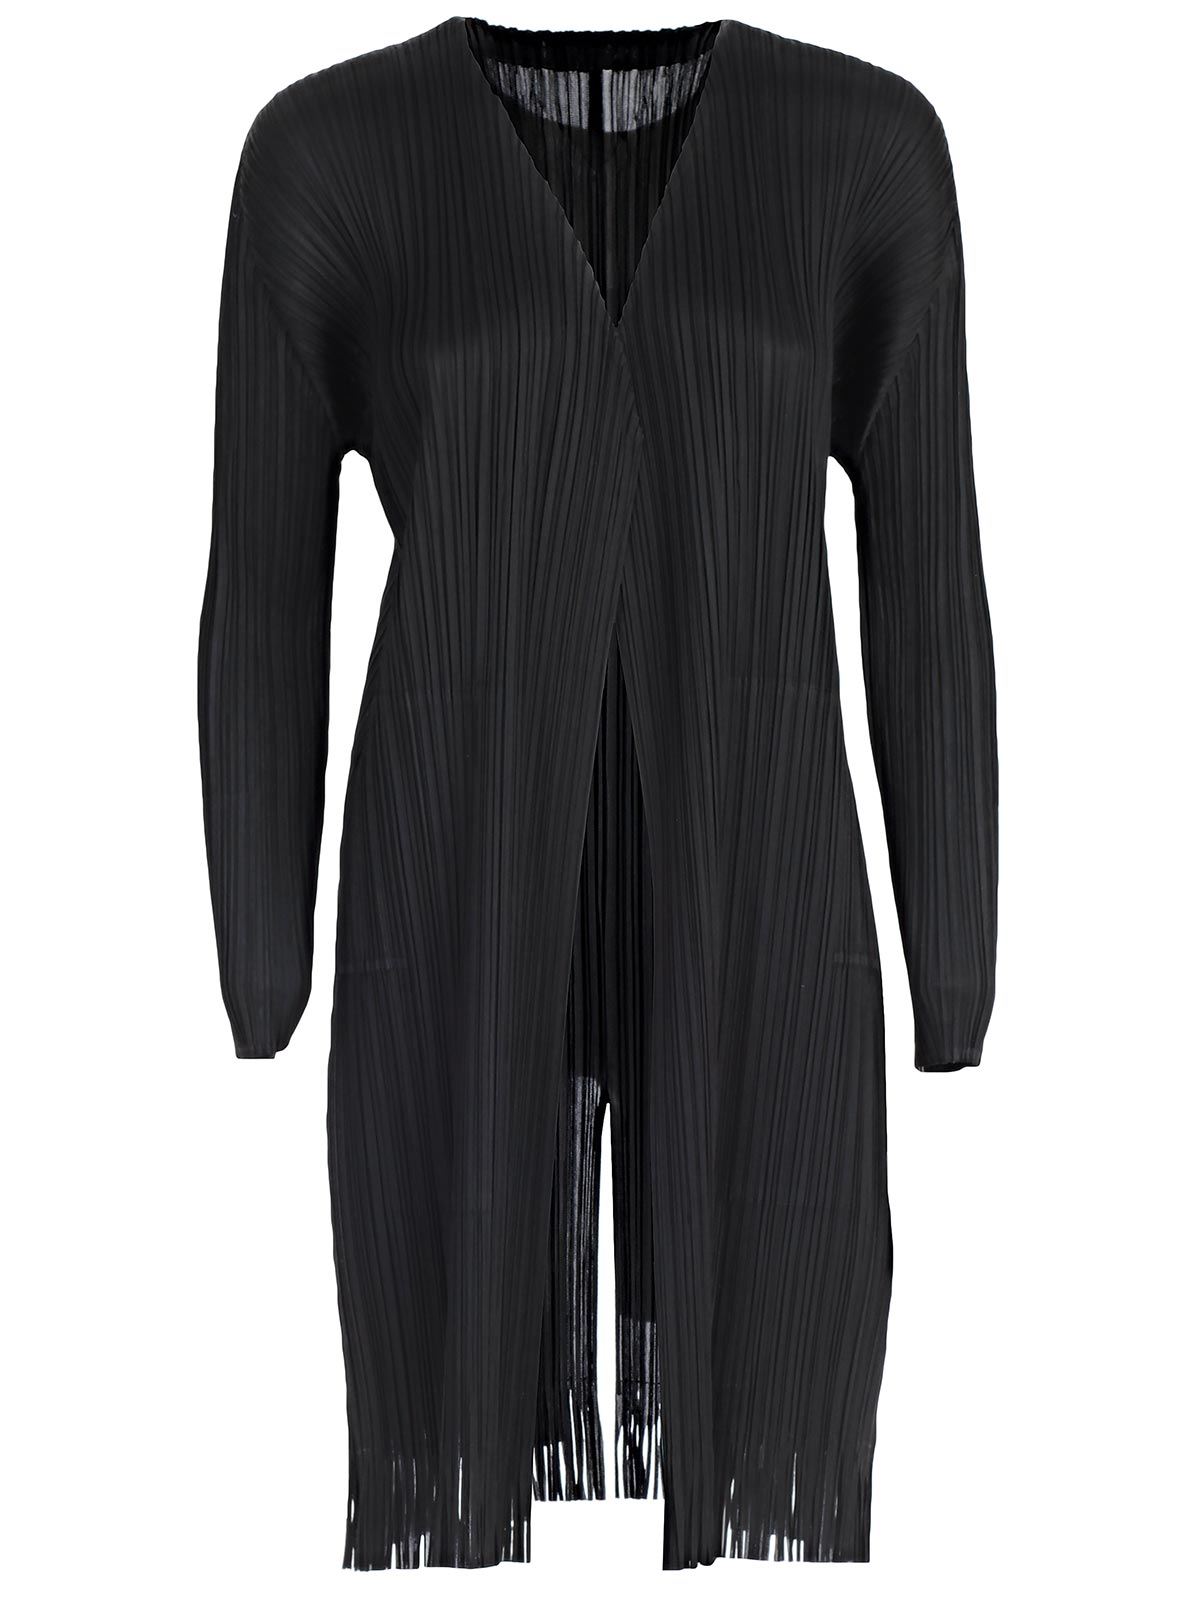 Picture of PLEATS PLEASE BY ISSEY MIYAKE Trench